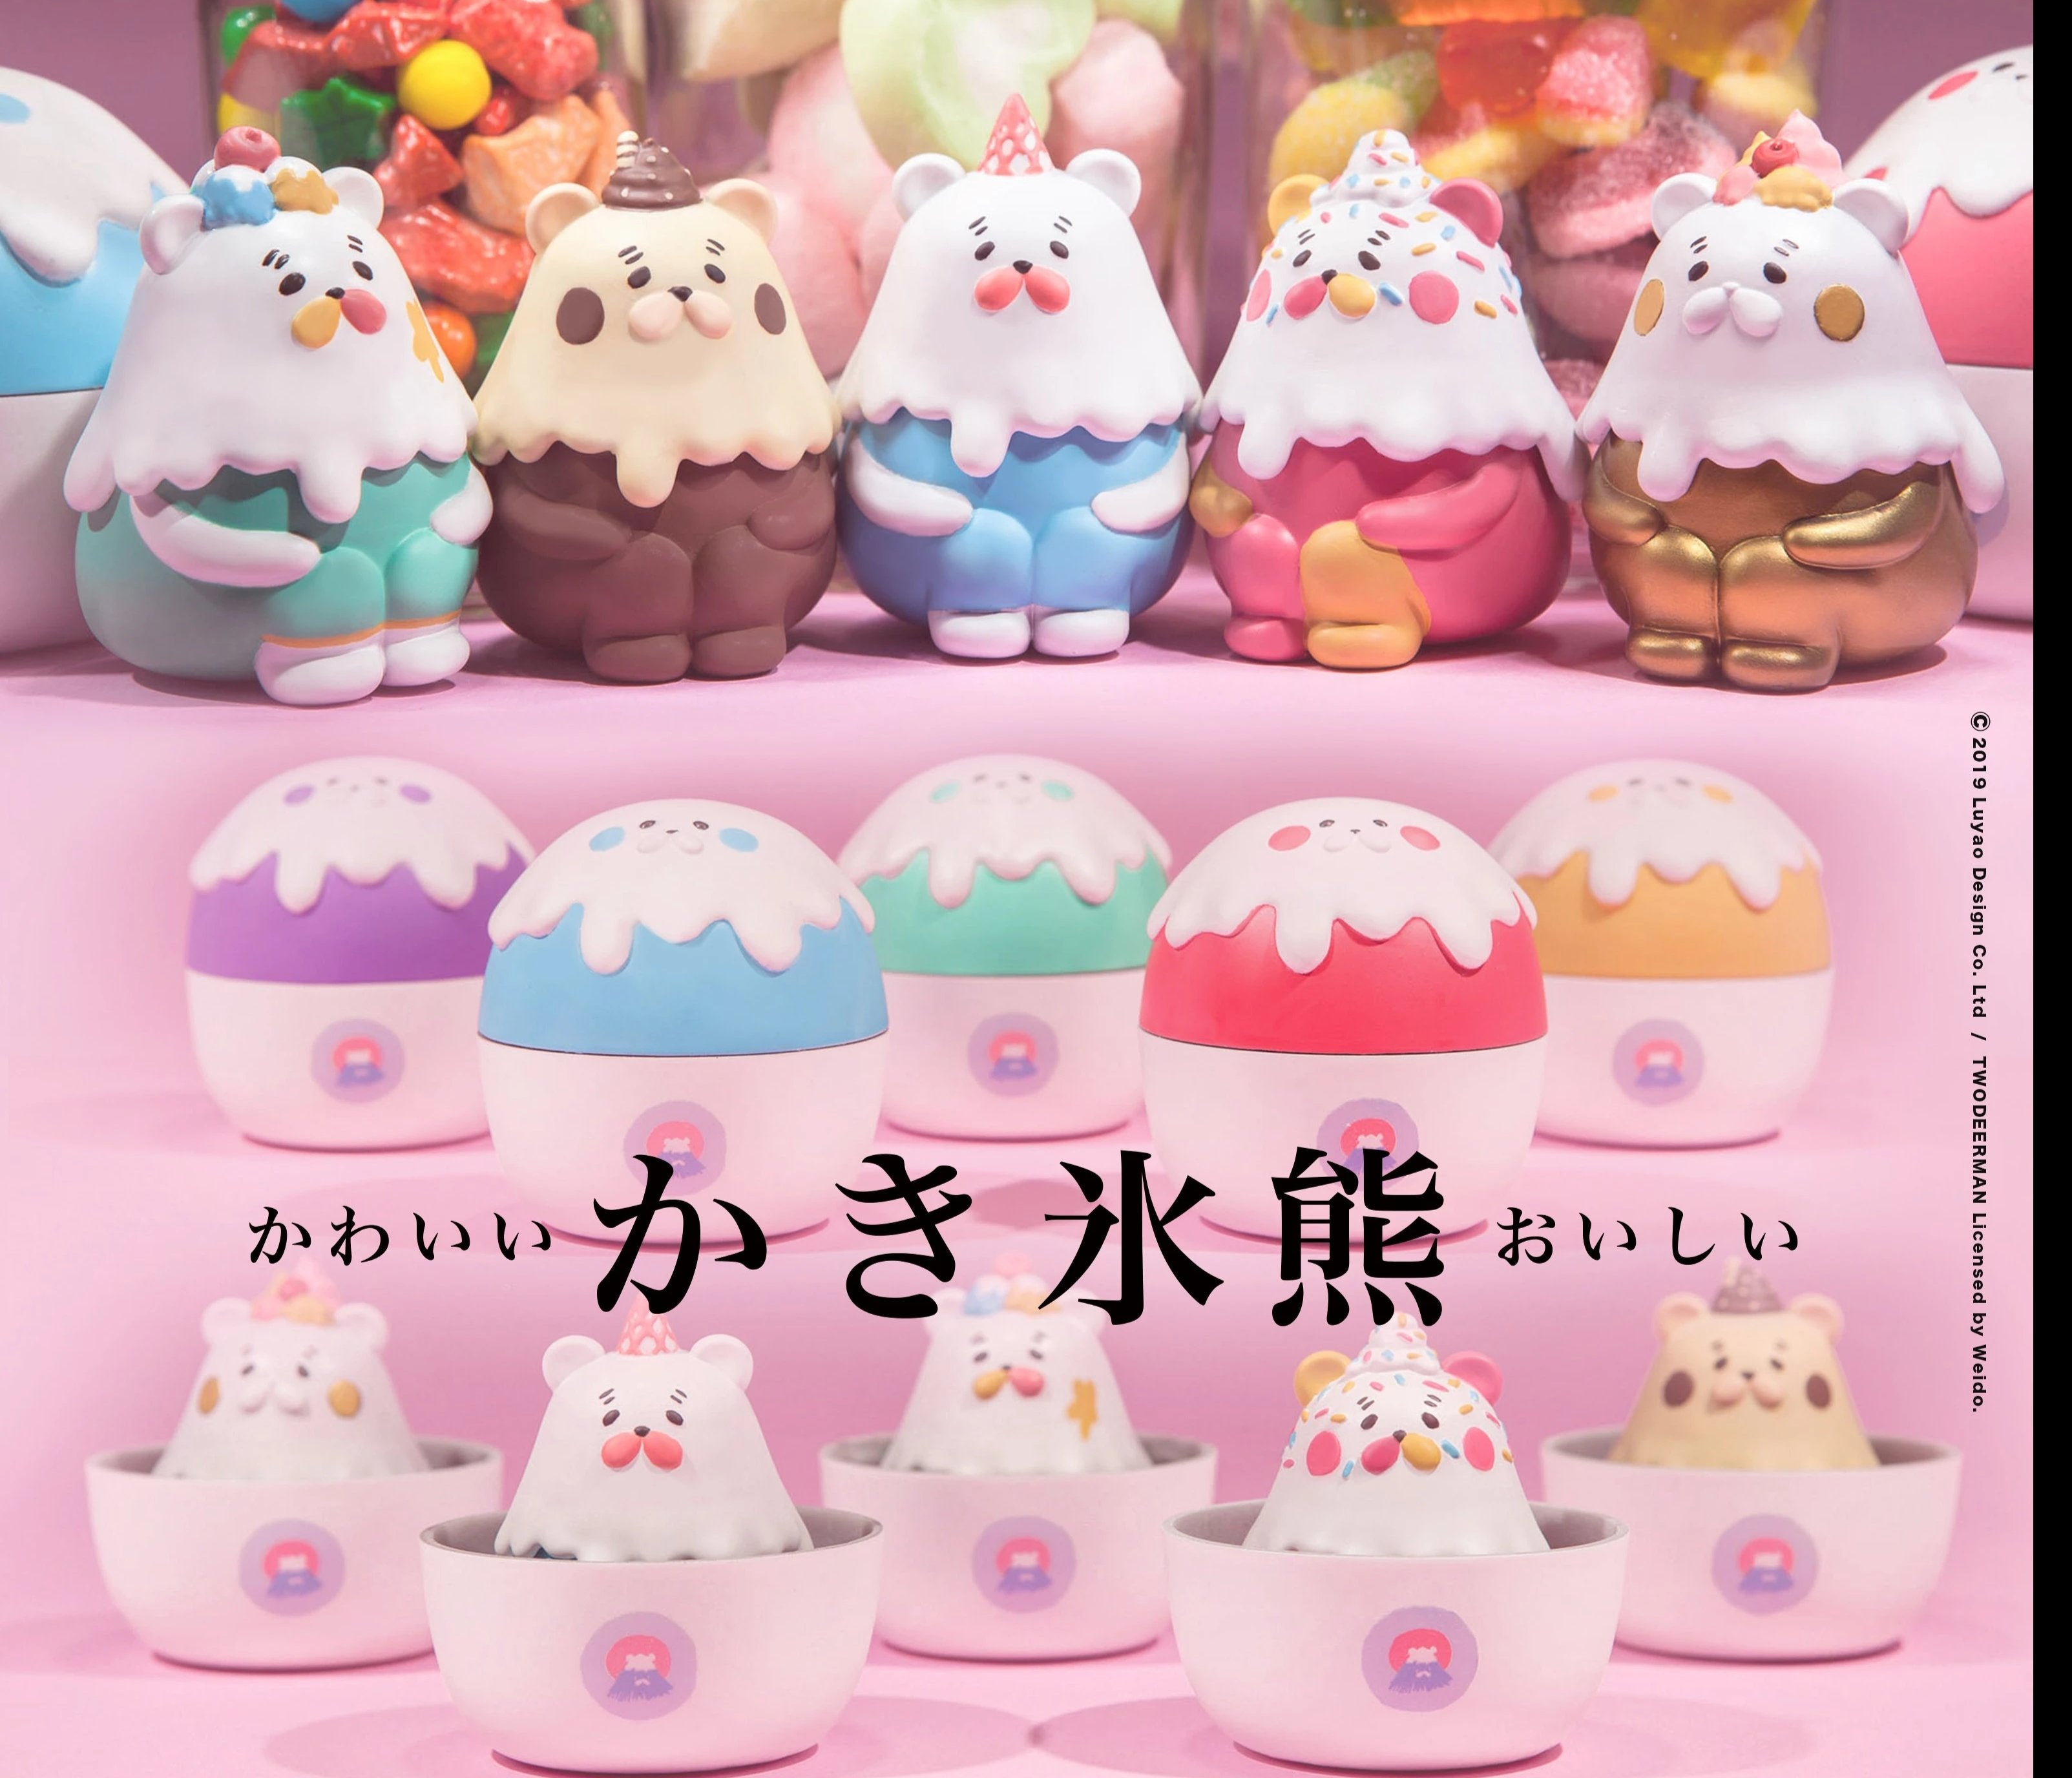 Shaved ice bear Gacha Series - Preorder